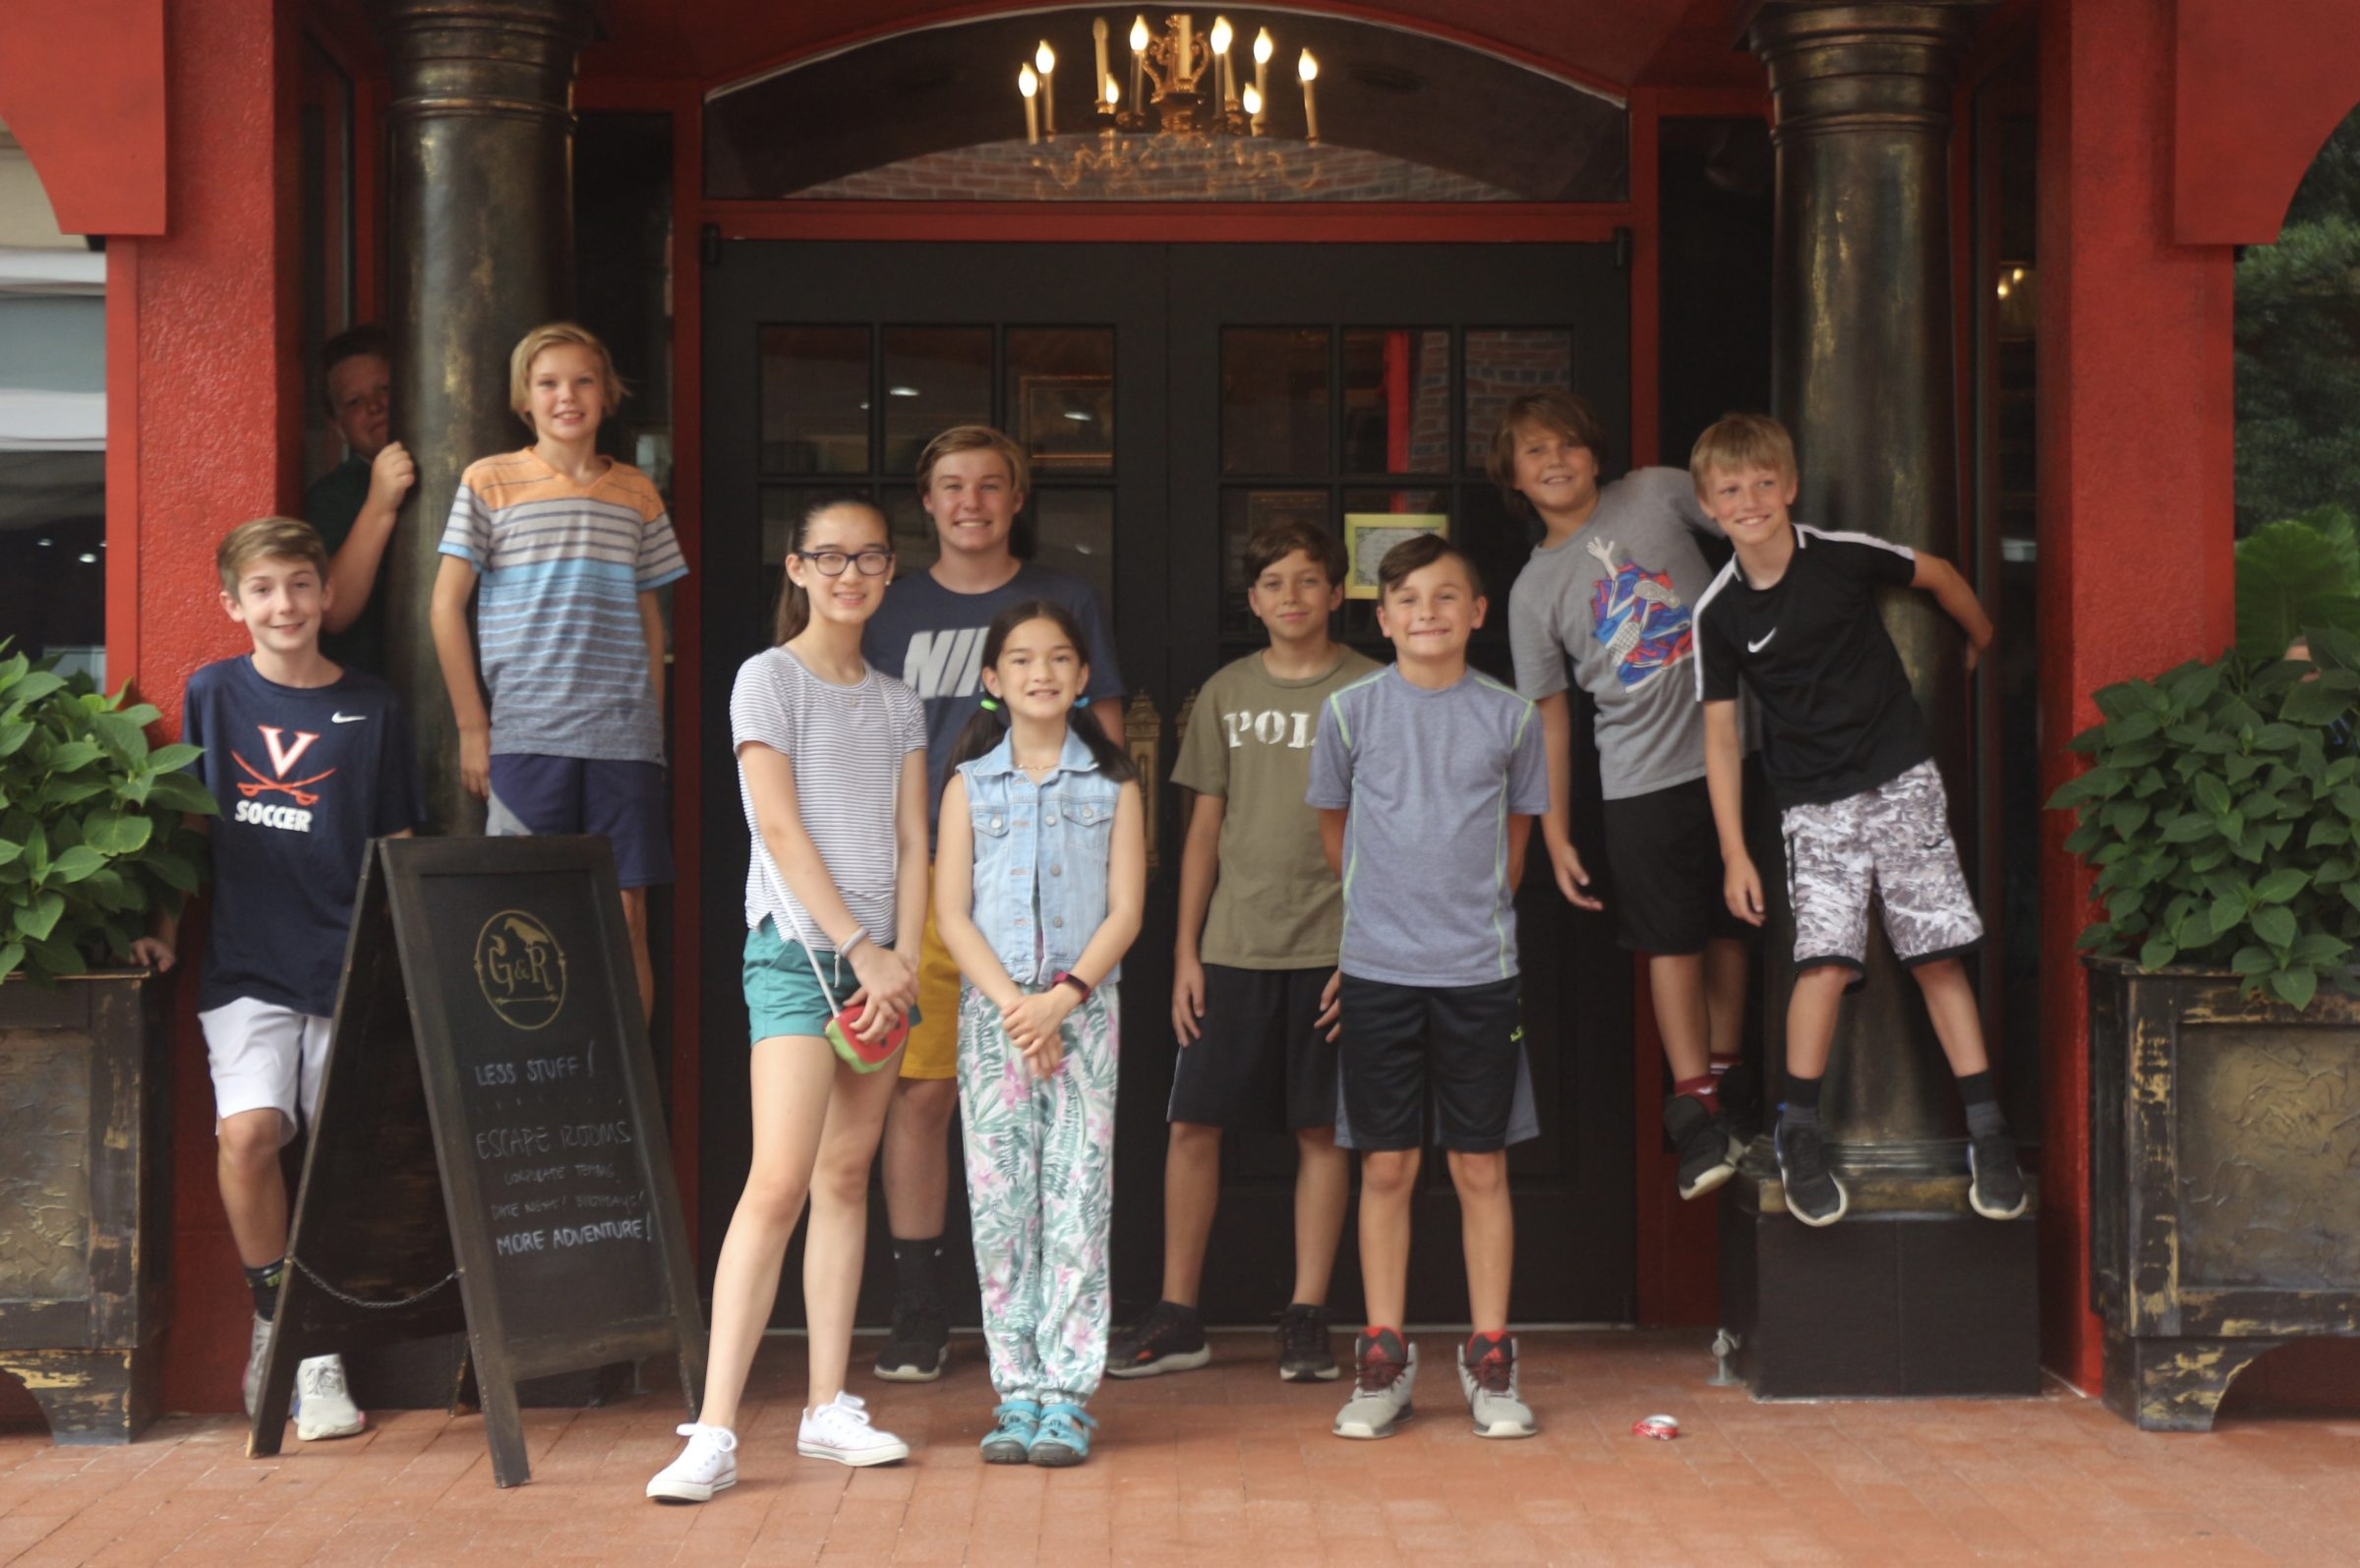 Escape Room Party Is A Birthday Win For The Tween-ish Set